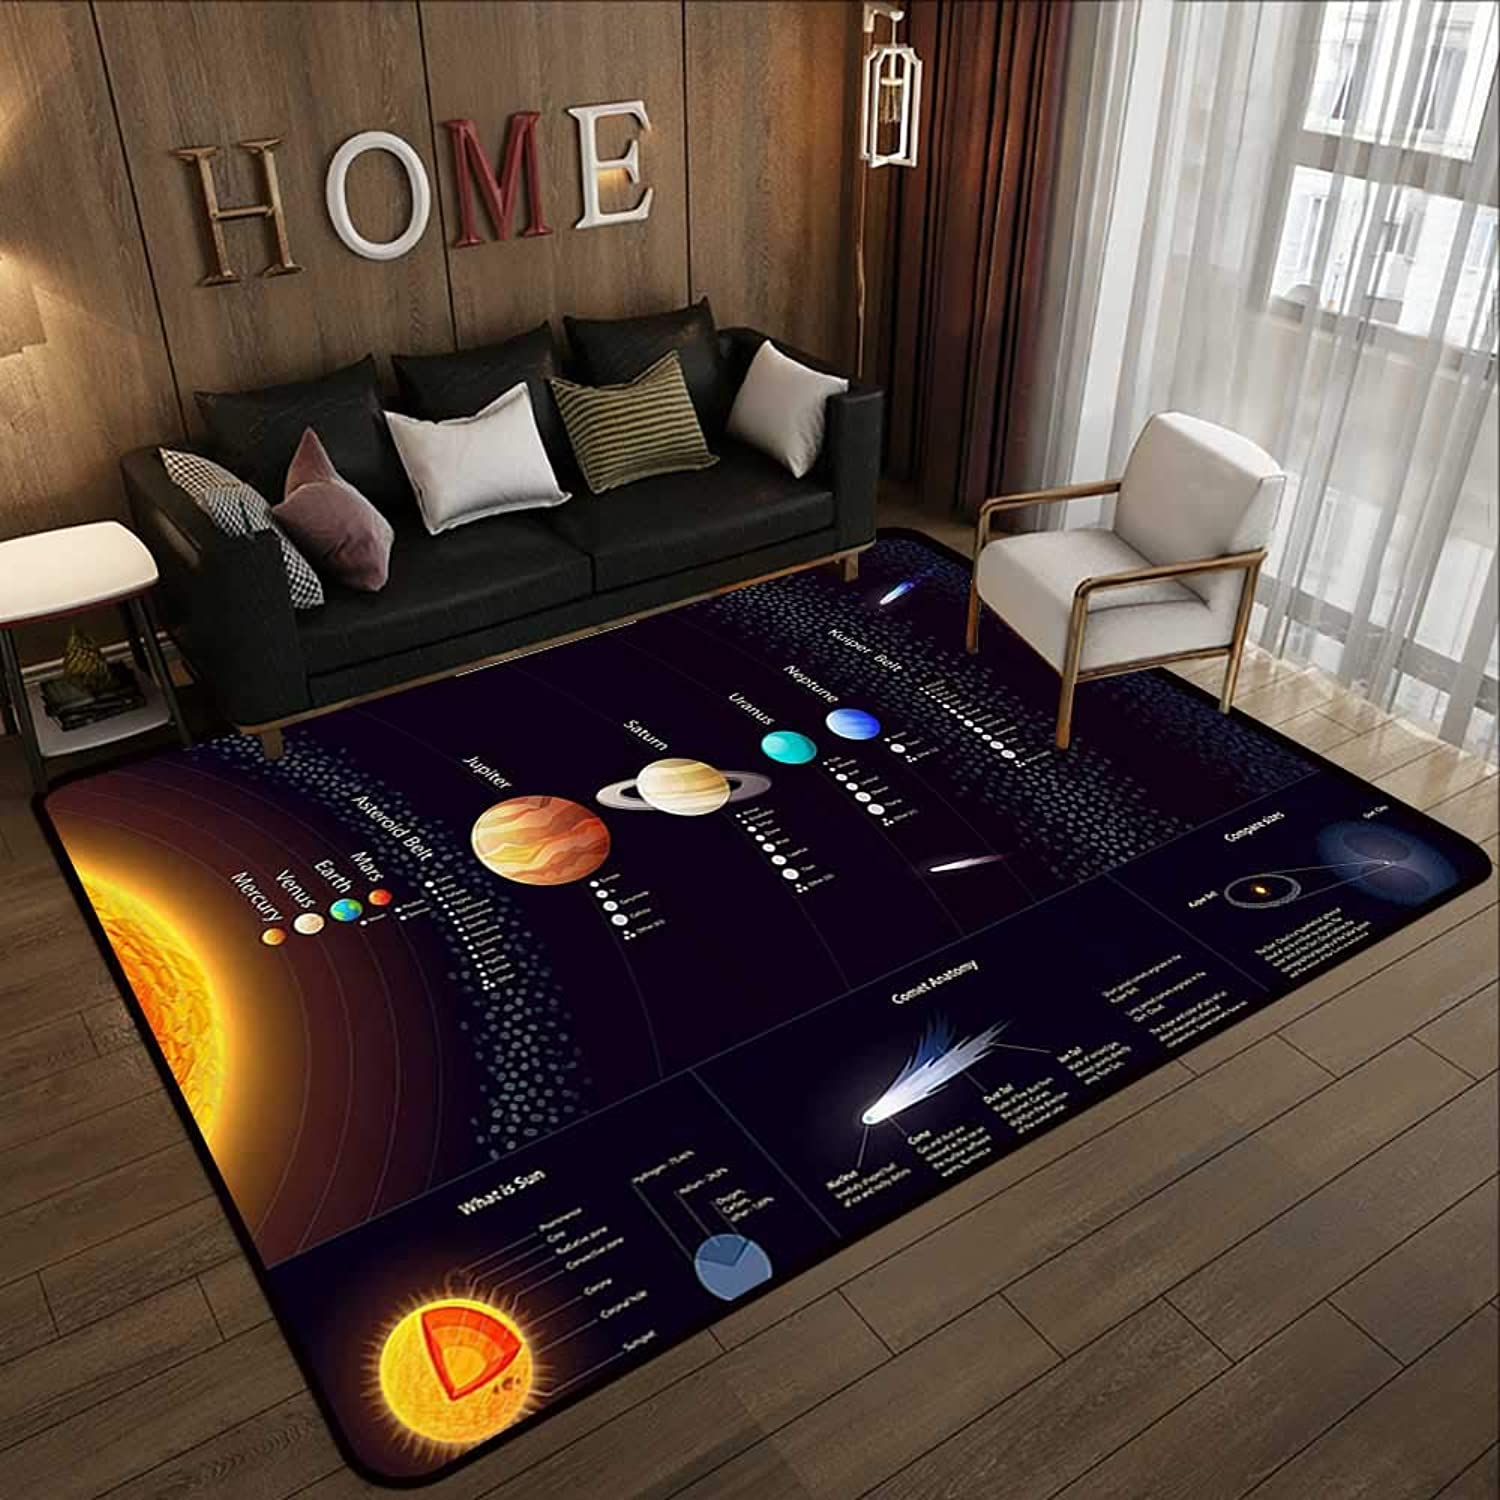 Kids Rugs,Outer Space Decor,Detailed Solar System with Scientific Information Jupiter Saturn Universe Telescope Print,Multi color 78.7 x 118  Slip-Resistant Washable Entrance Doormat